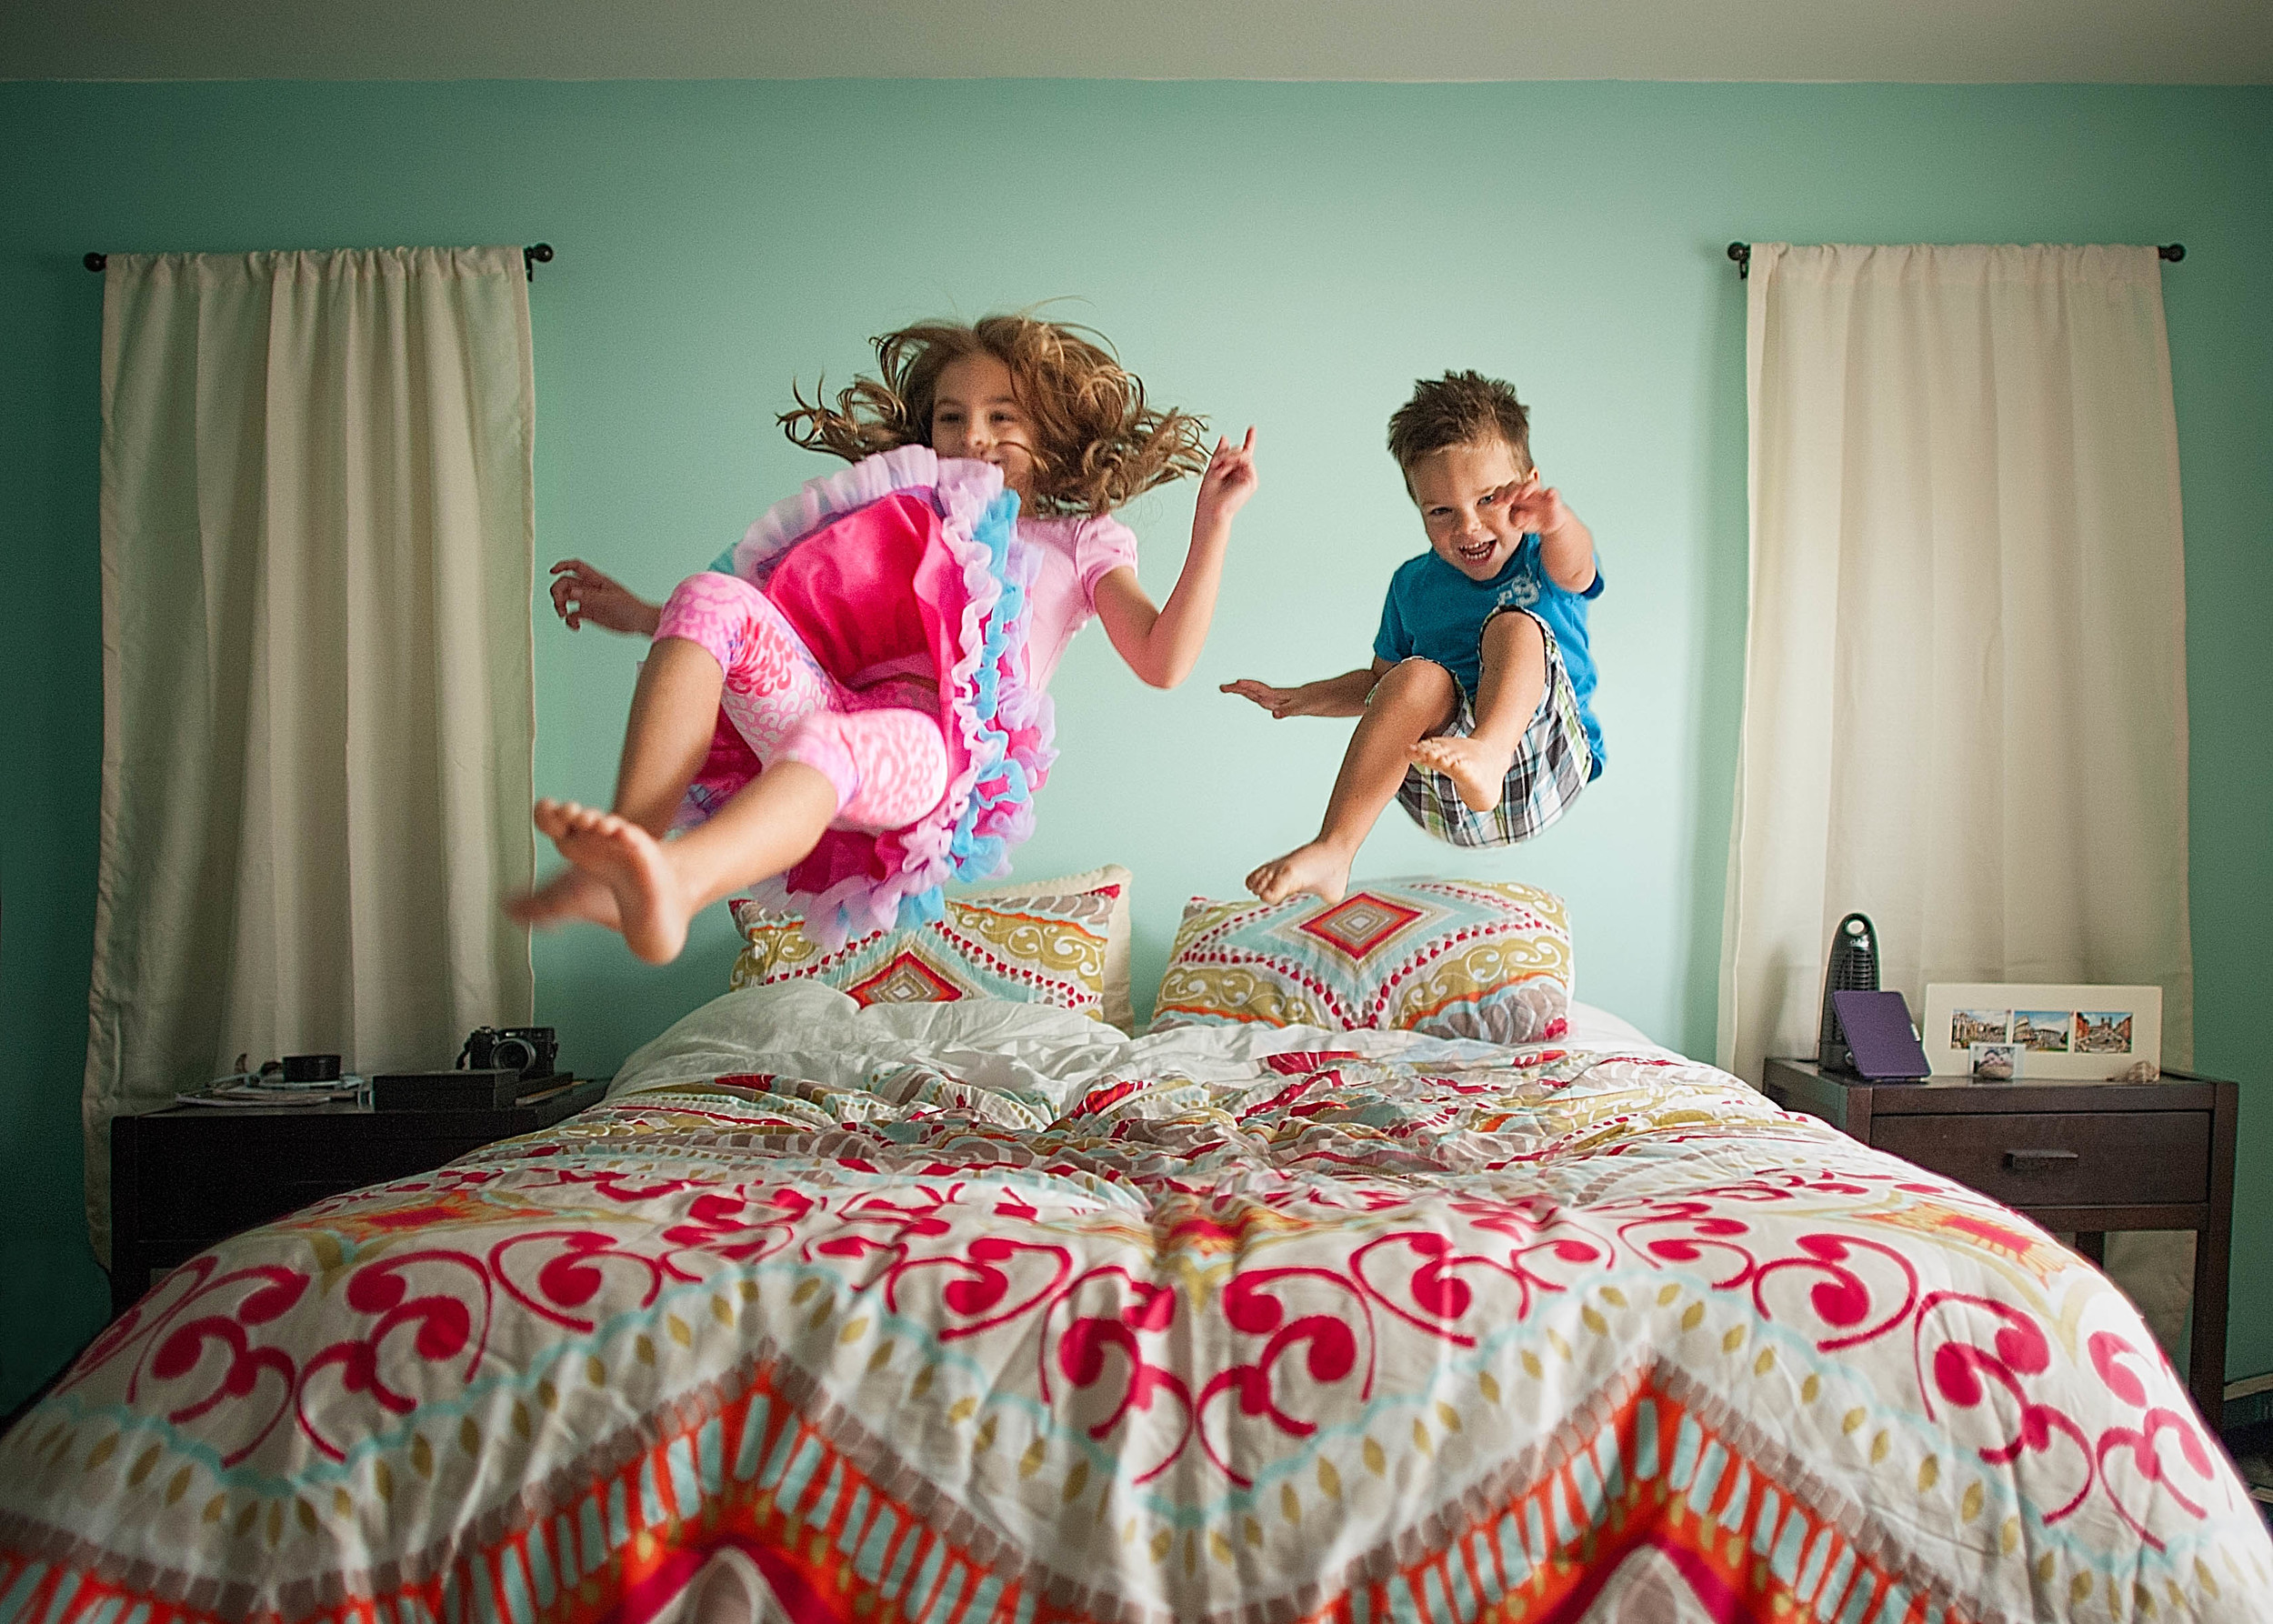 My kiddos, jumping on the bed.